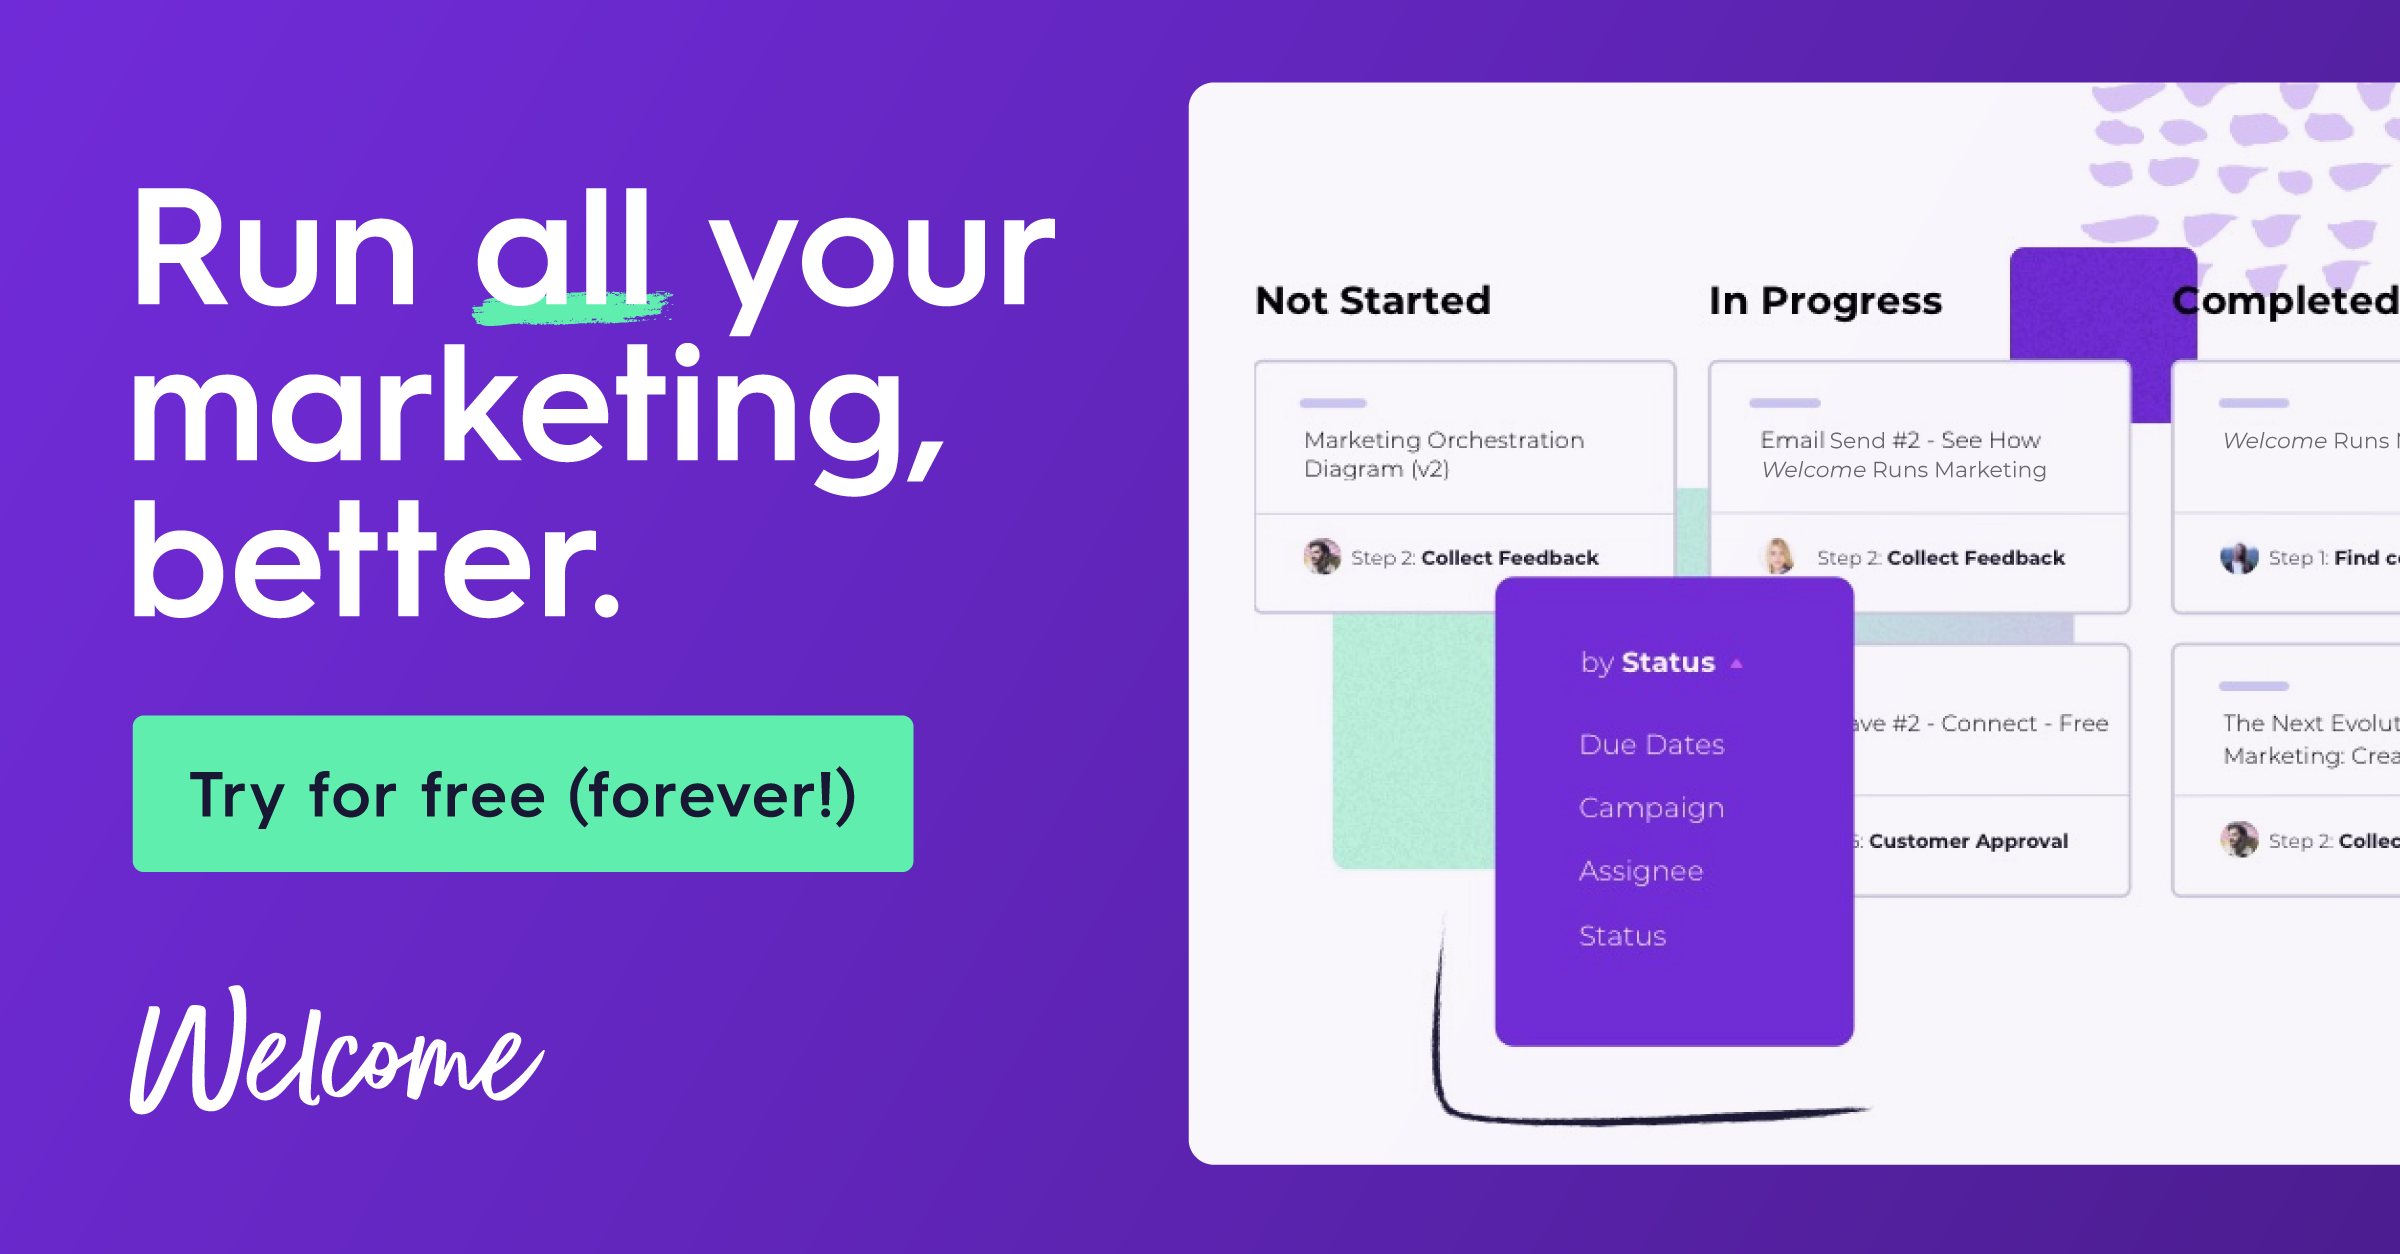 Try Welcome for free - forever